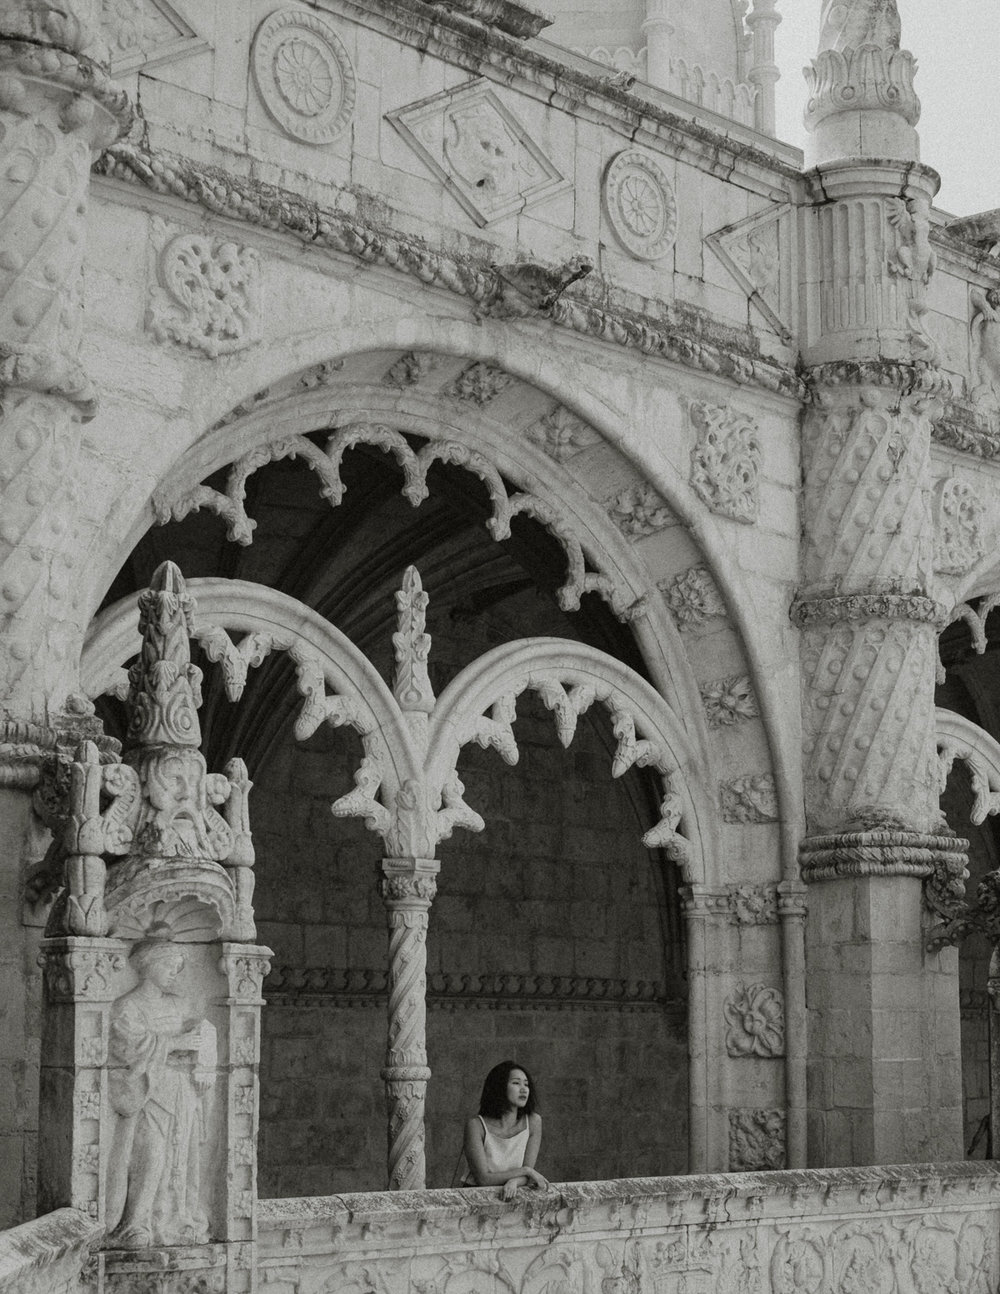 Taking a moment at   Jerónimos Monastery in Belém  .